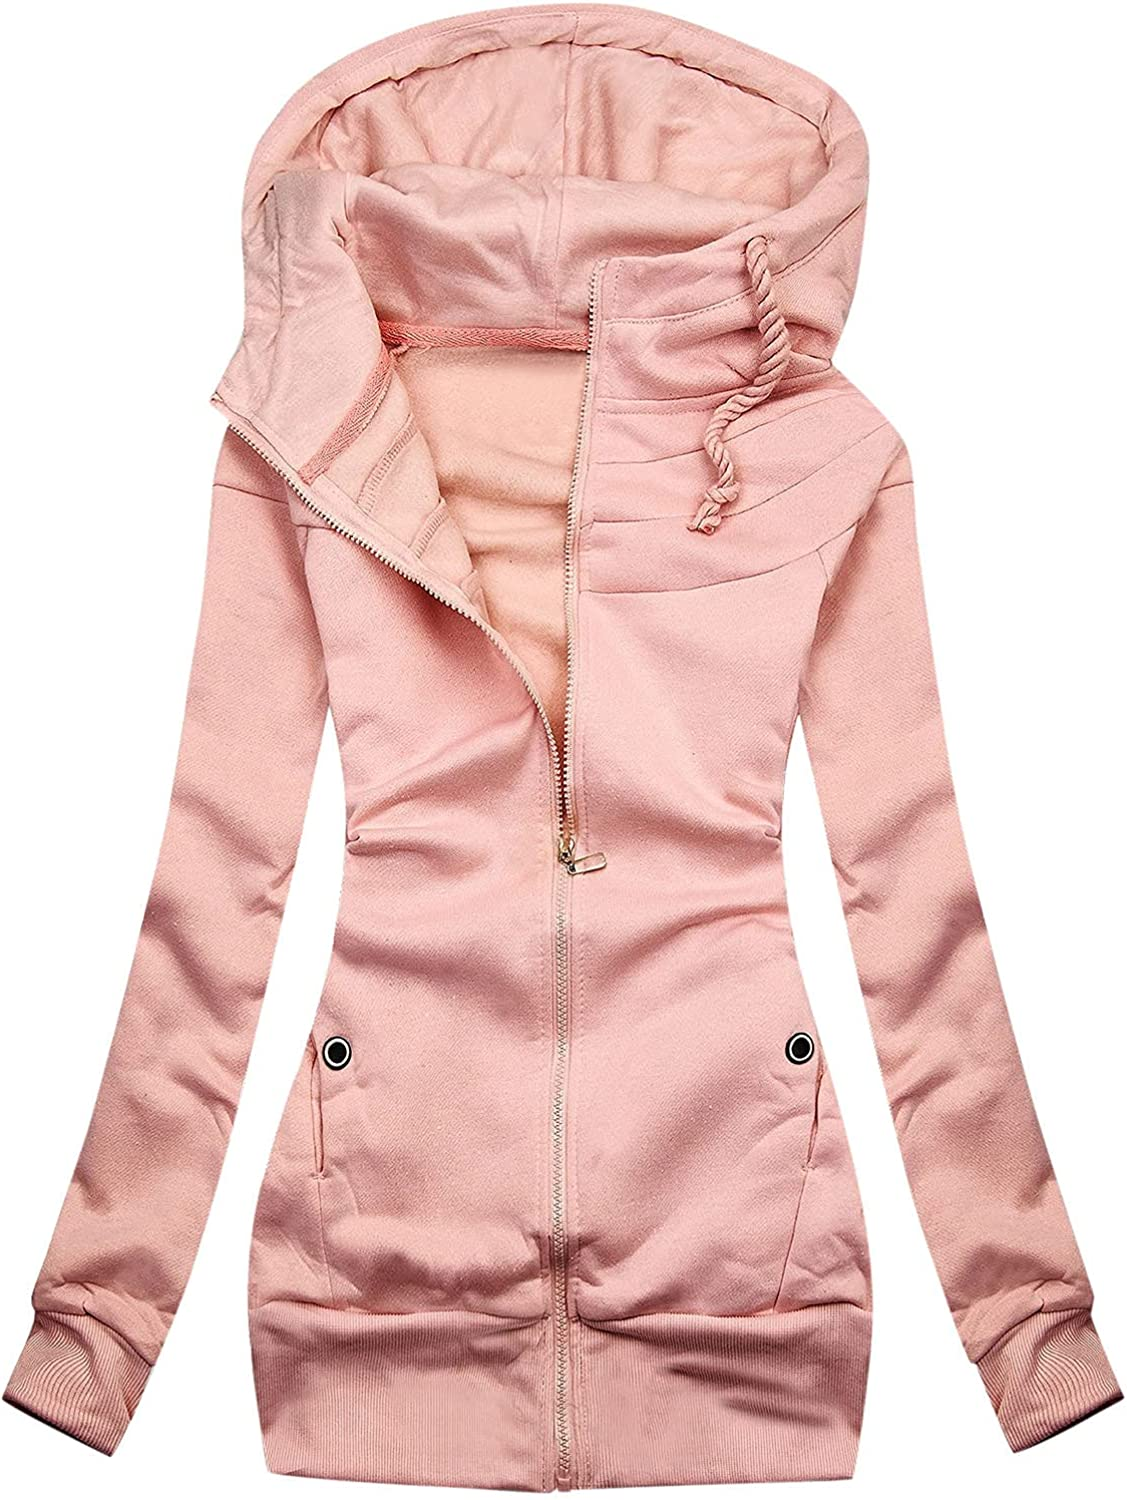 Wirziis Women's Zip Up Hoodies Challenge the A surprise price is realized lowest price of Japan ☆ Sweatshirts Sleeve Casual Long